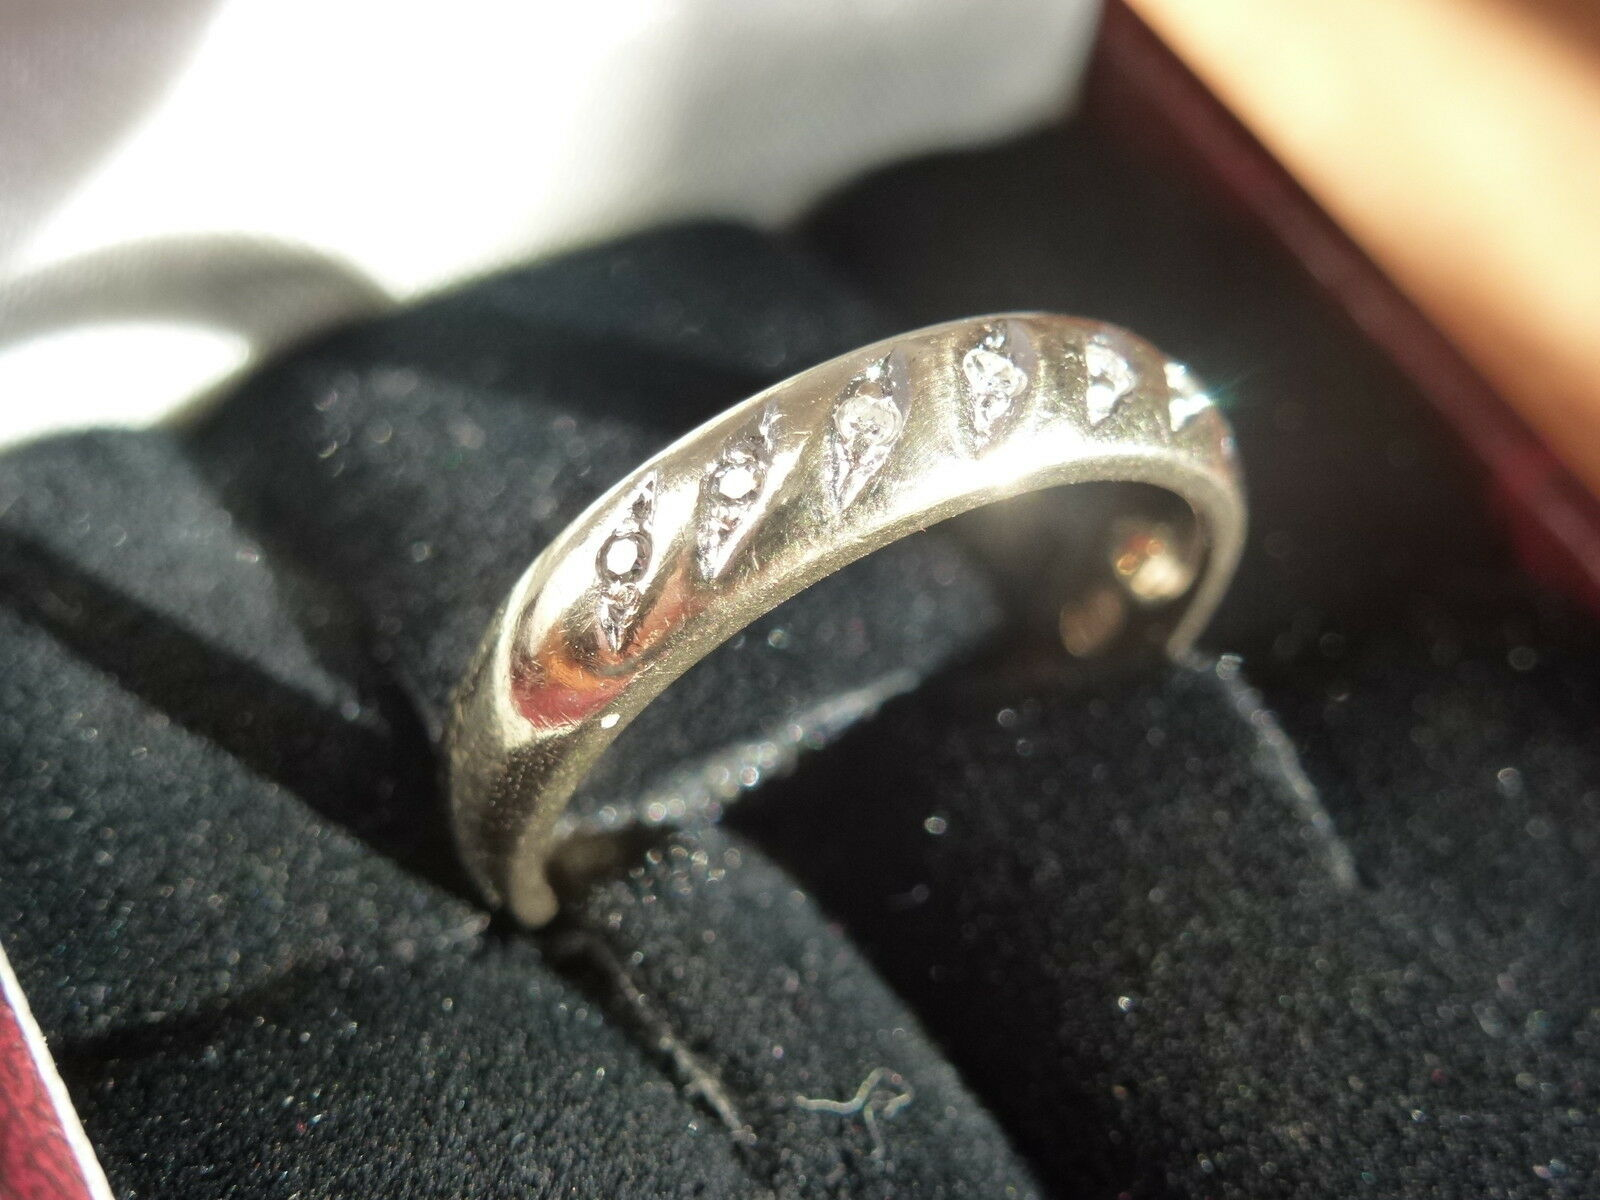 9k 9ct Solid gold Diamond Ring. Size M 6. 2.49g